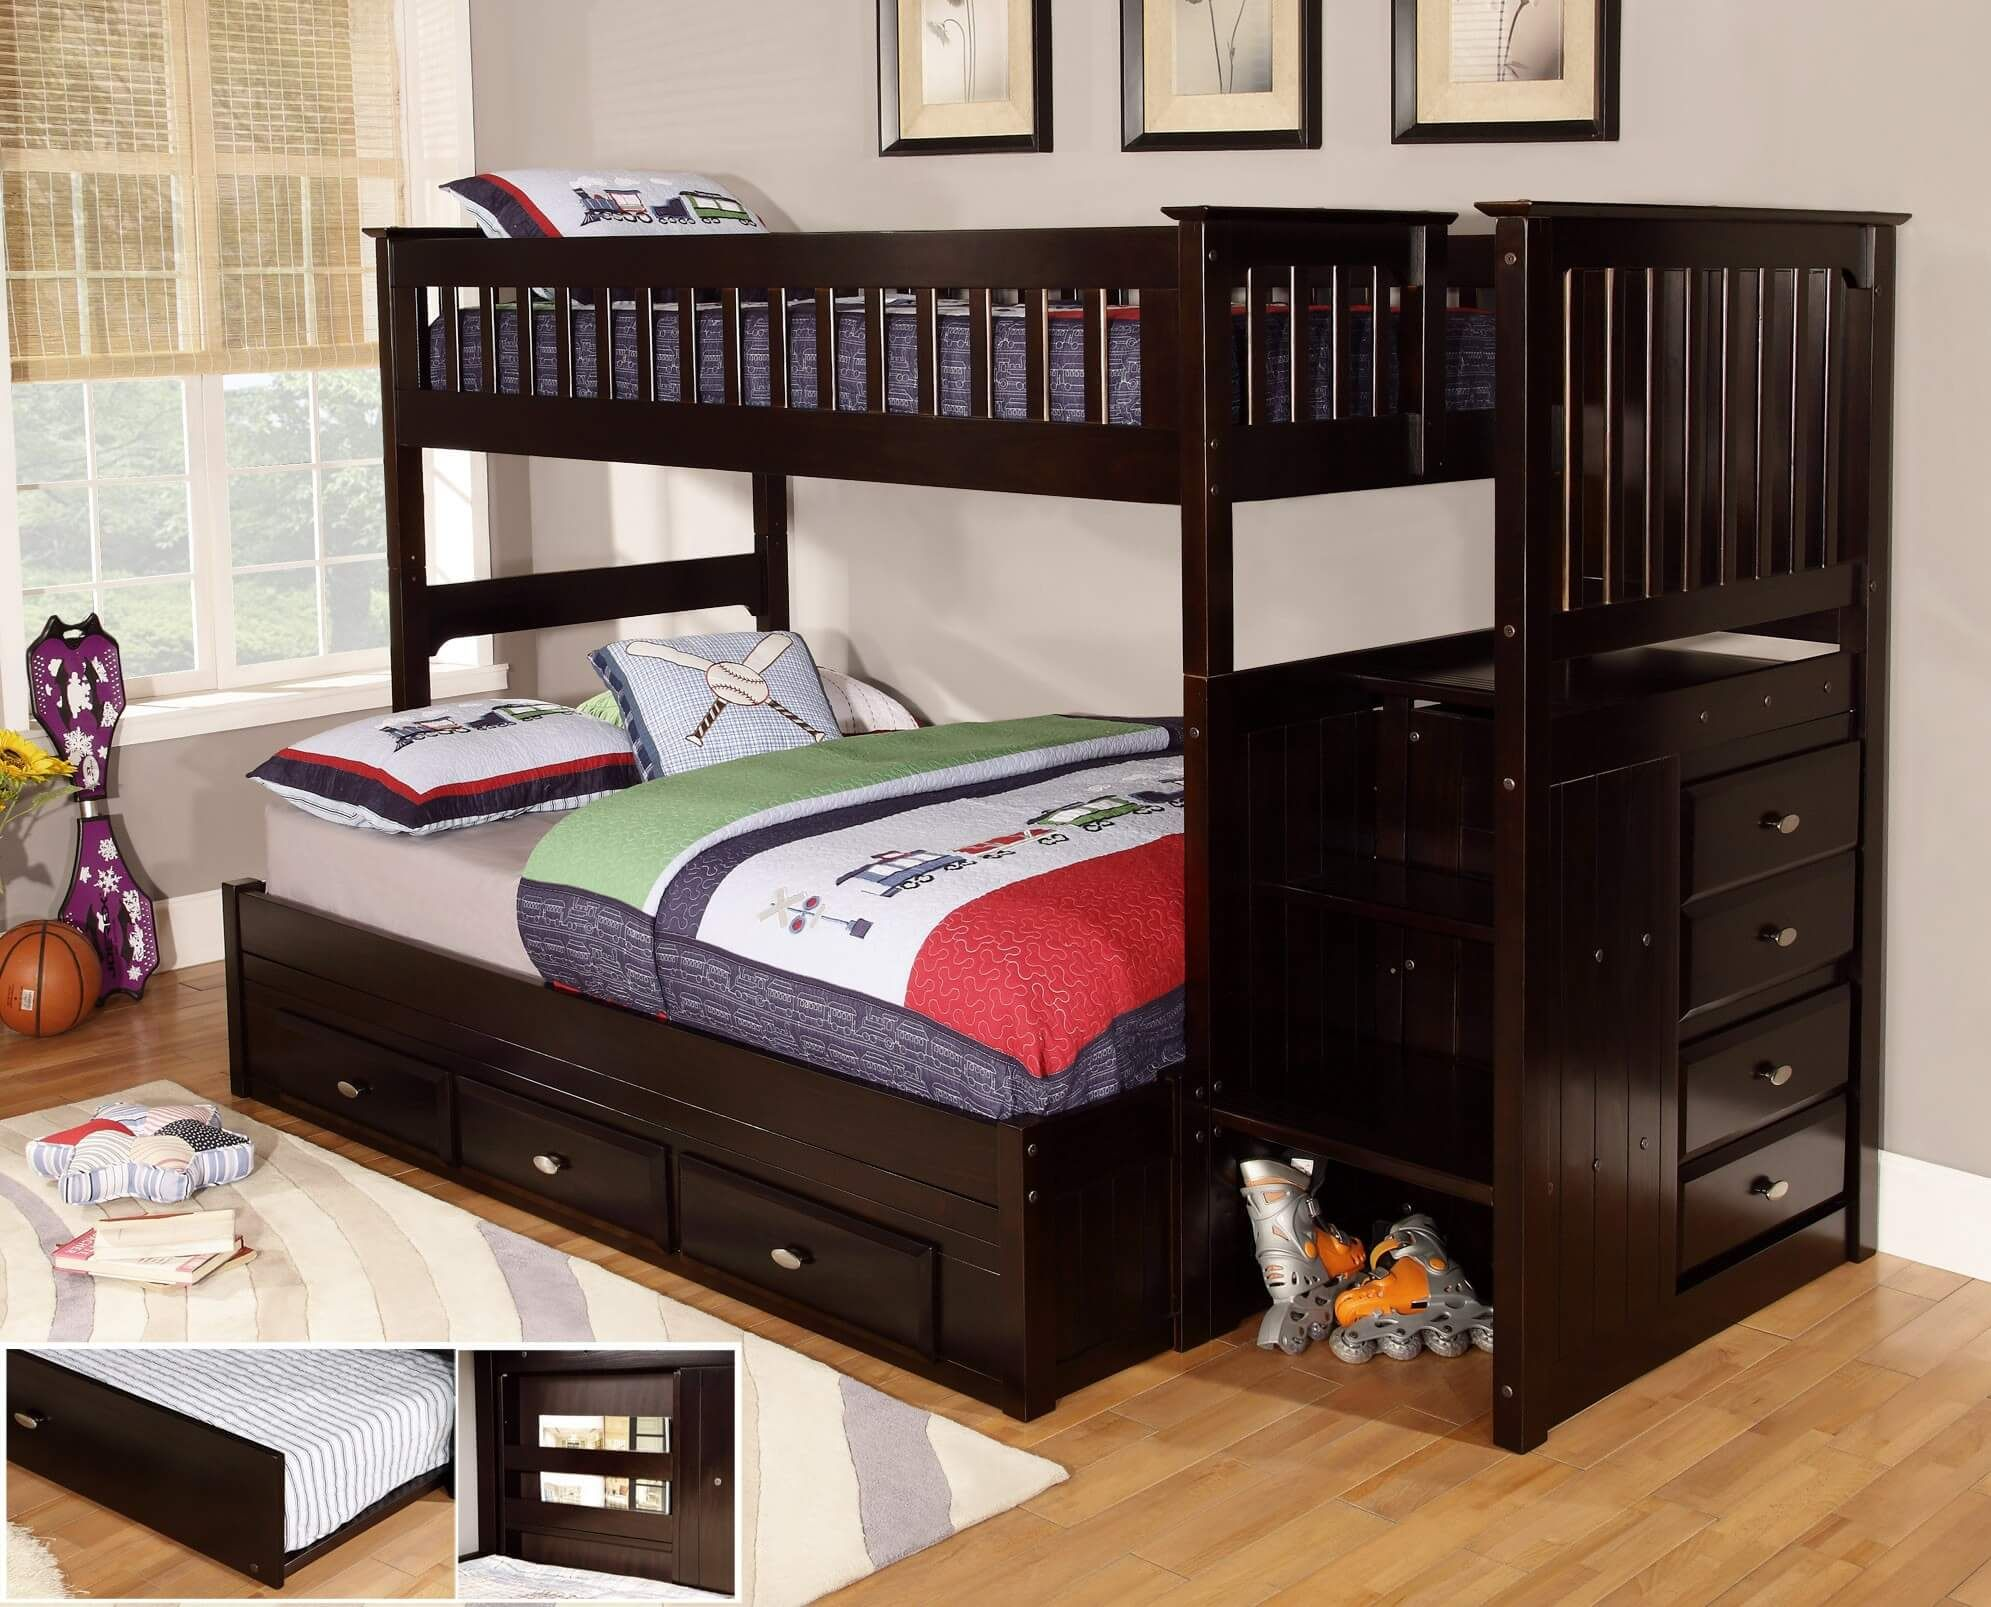 Loft bed ideas for small rooms  Full size low loft bed u You have a really small room with good